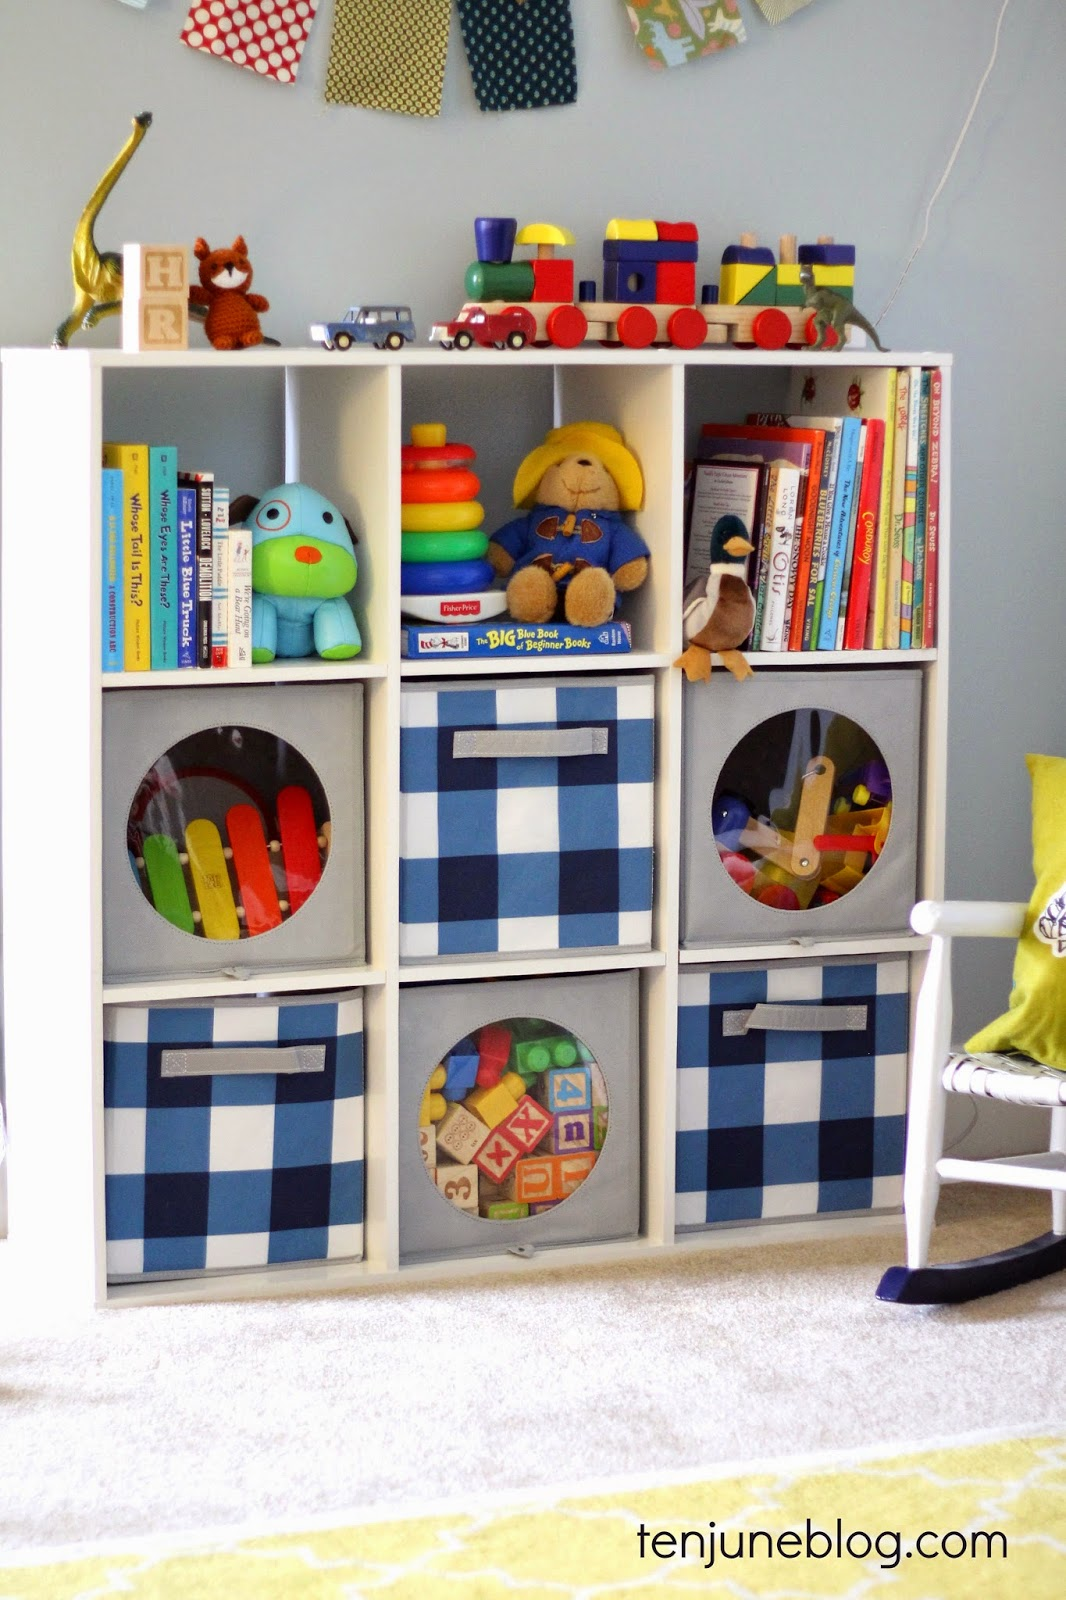 Kids Room/Play Room Toy Storage Ideas : storage toys  - Aquiesqueretaro.Com